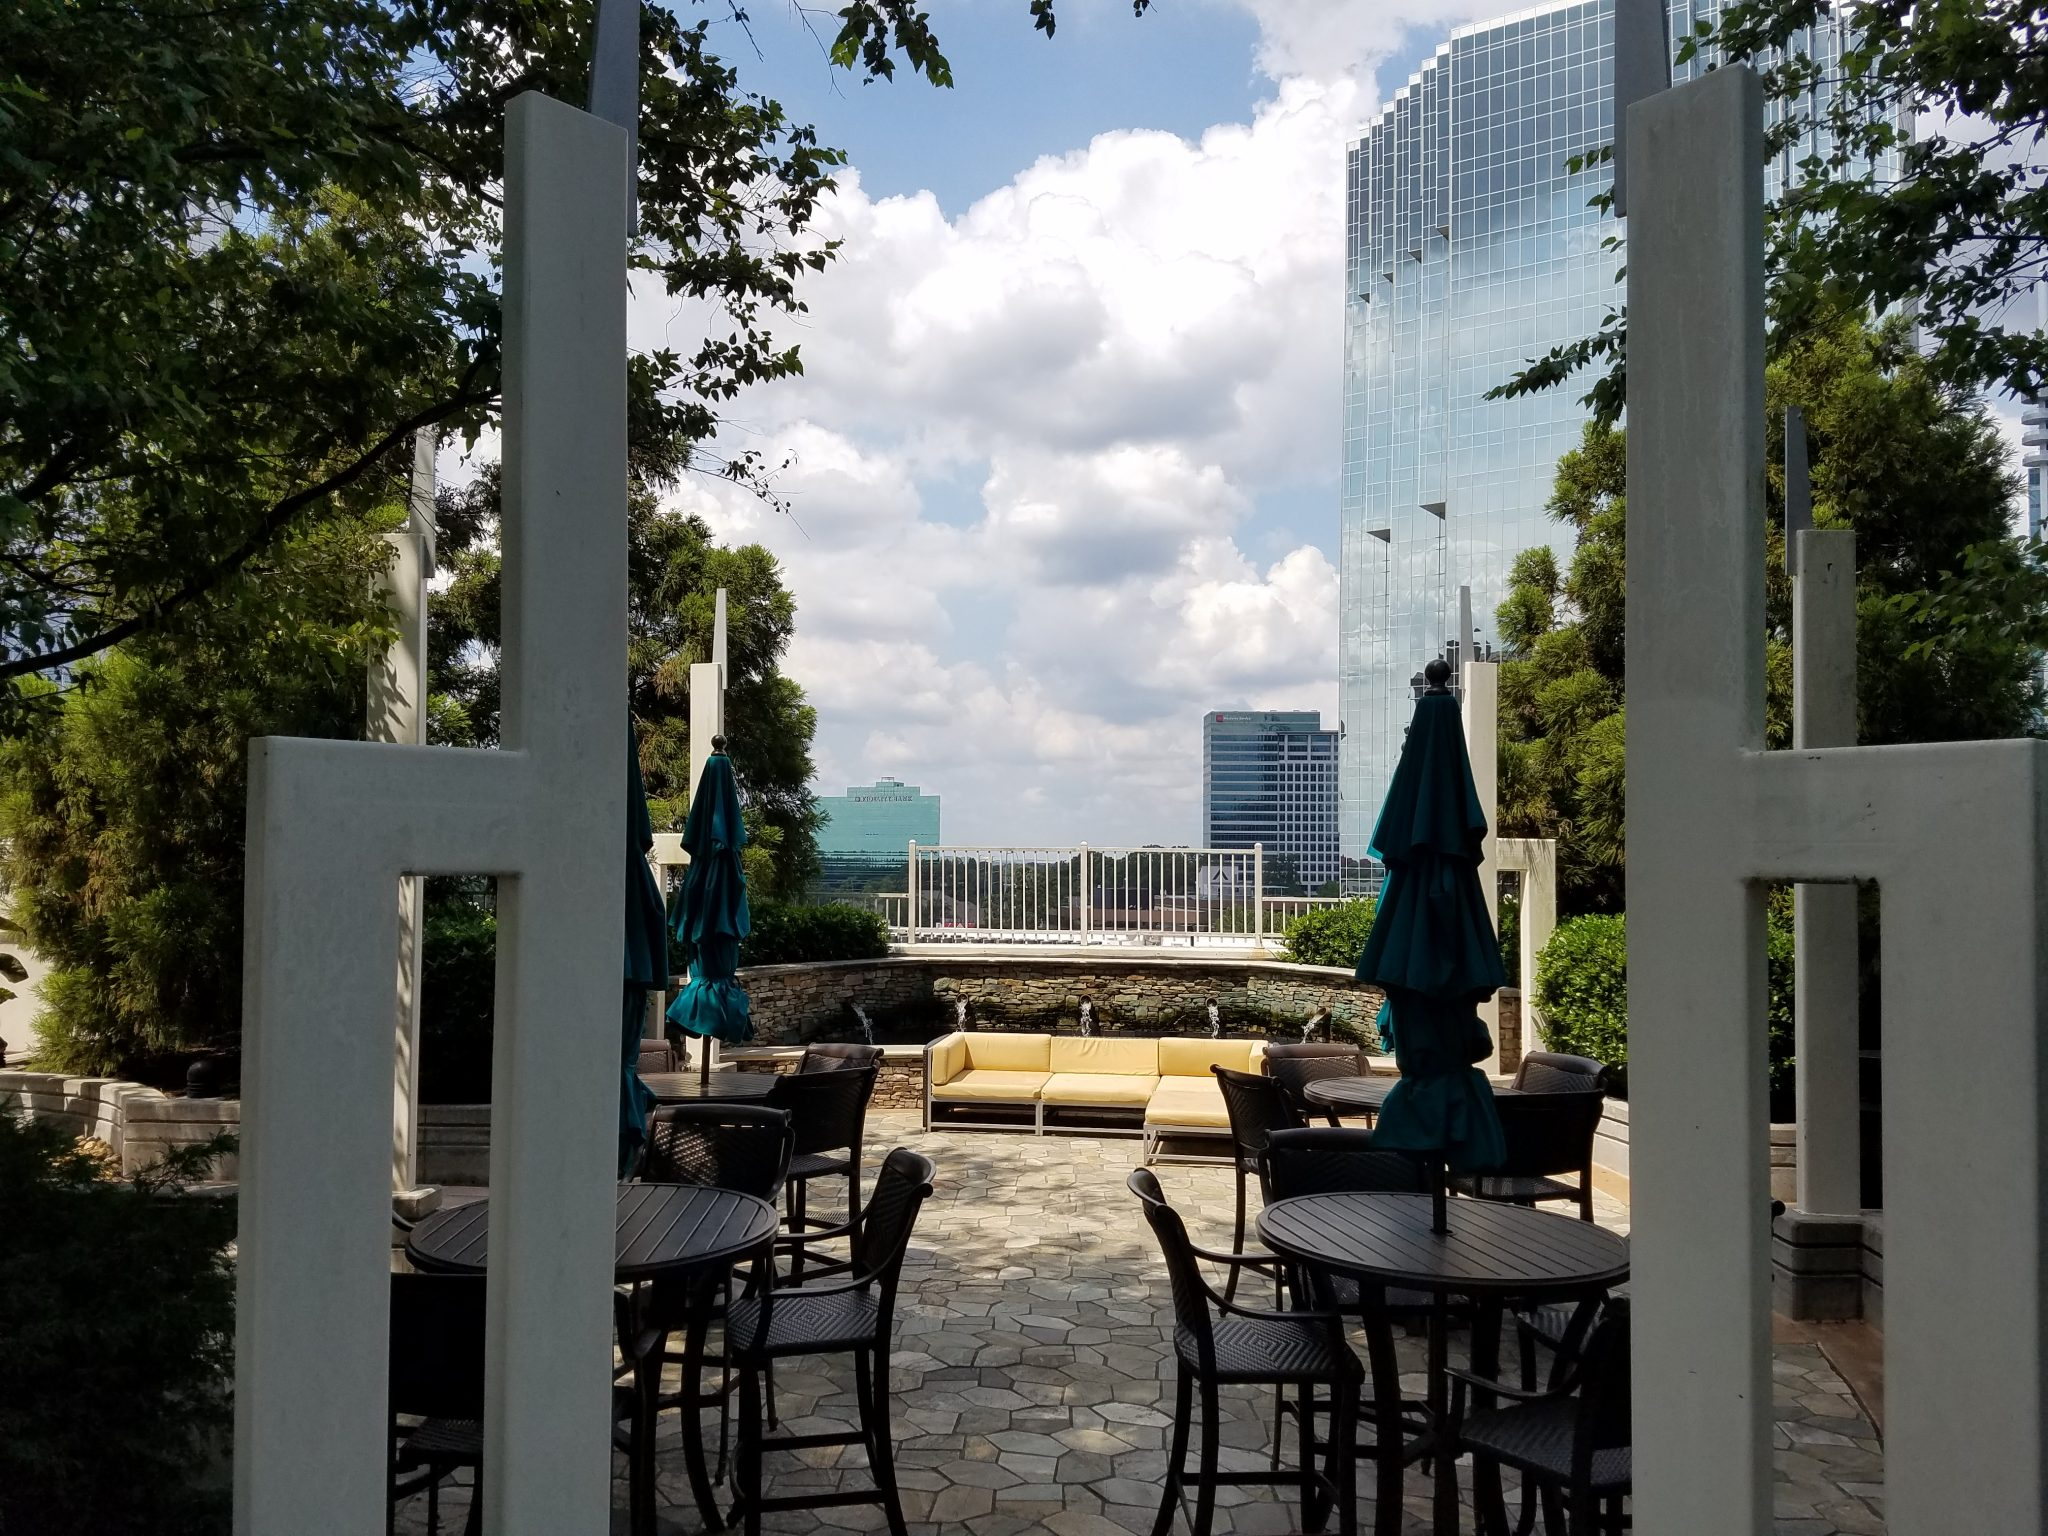 The Realm in Buckhead Outside Common Area with bar chairs and tables